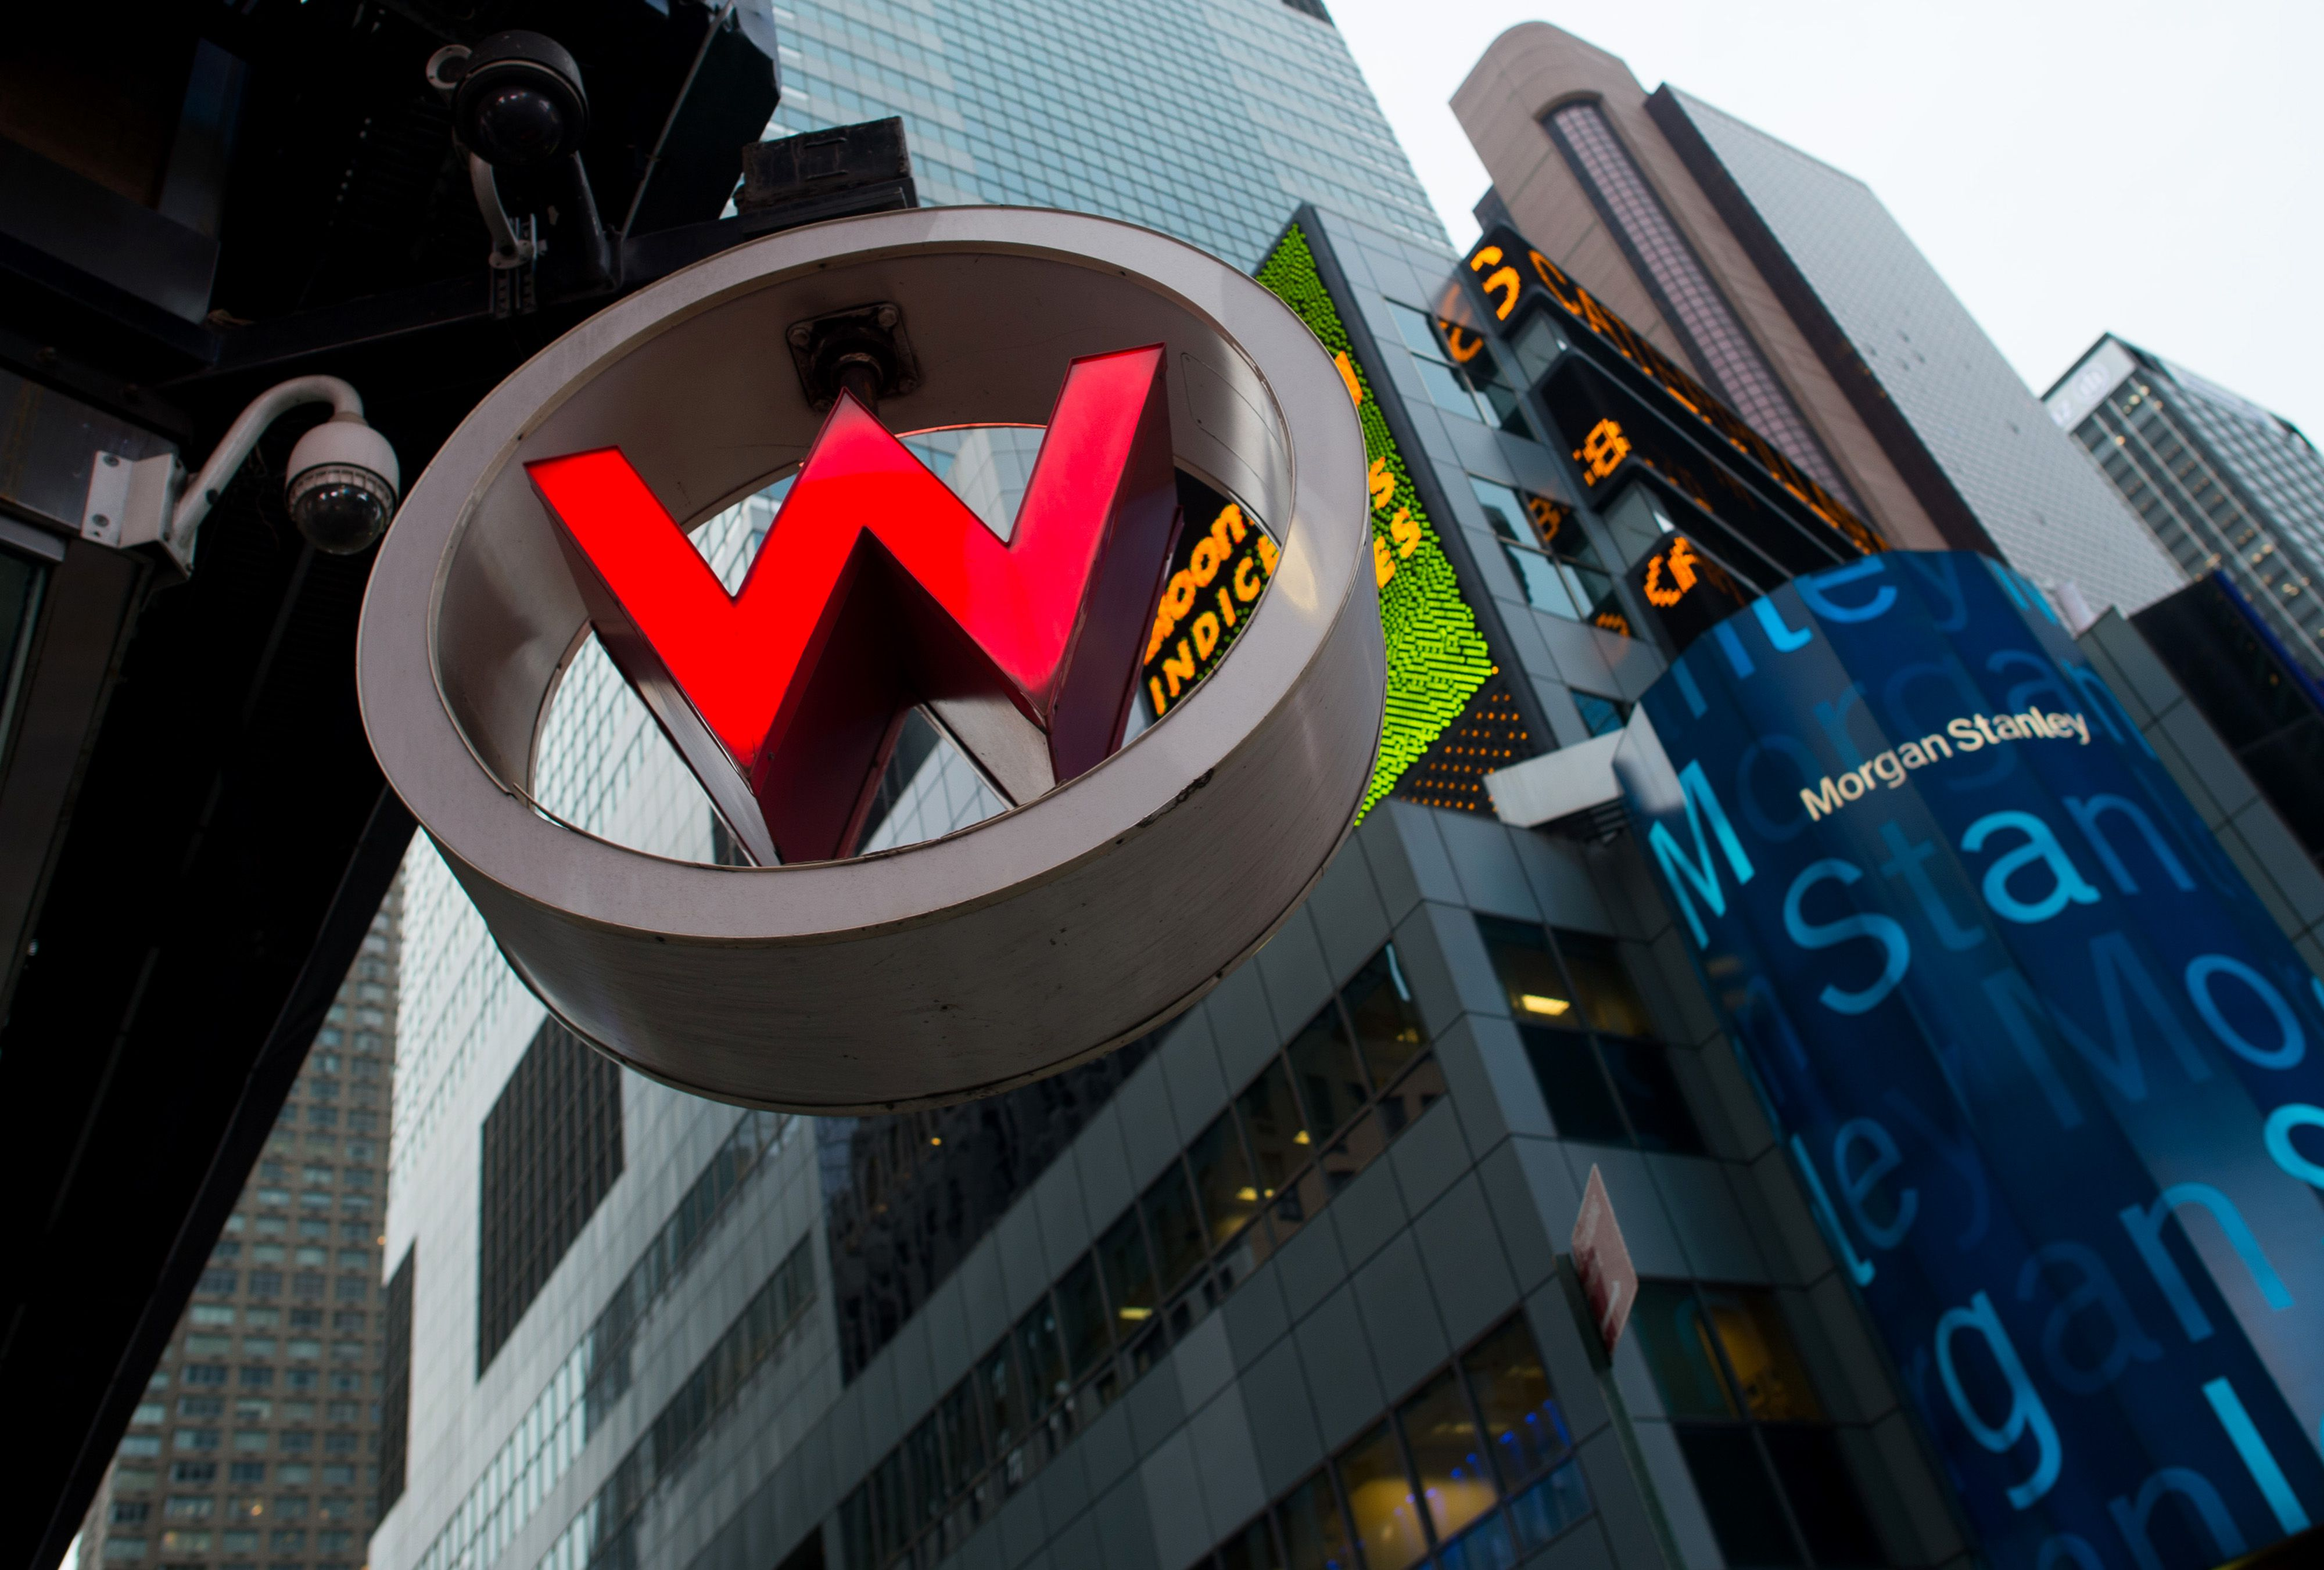 Signage for the W Hotel New York in Times Square. W Hotel is part of Starwood Hotels.